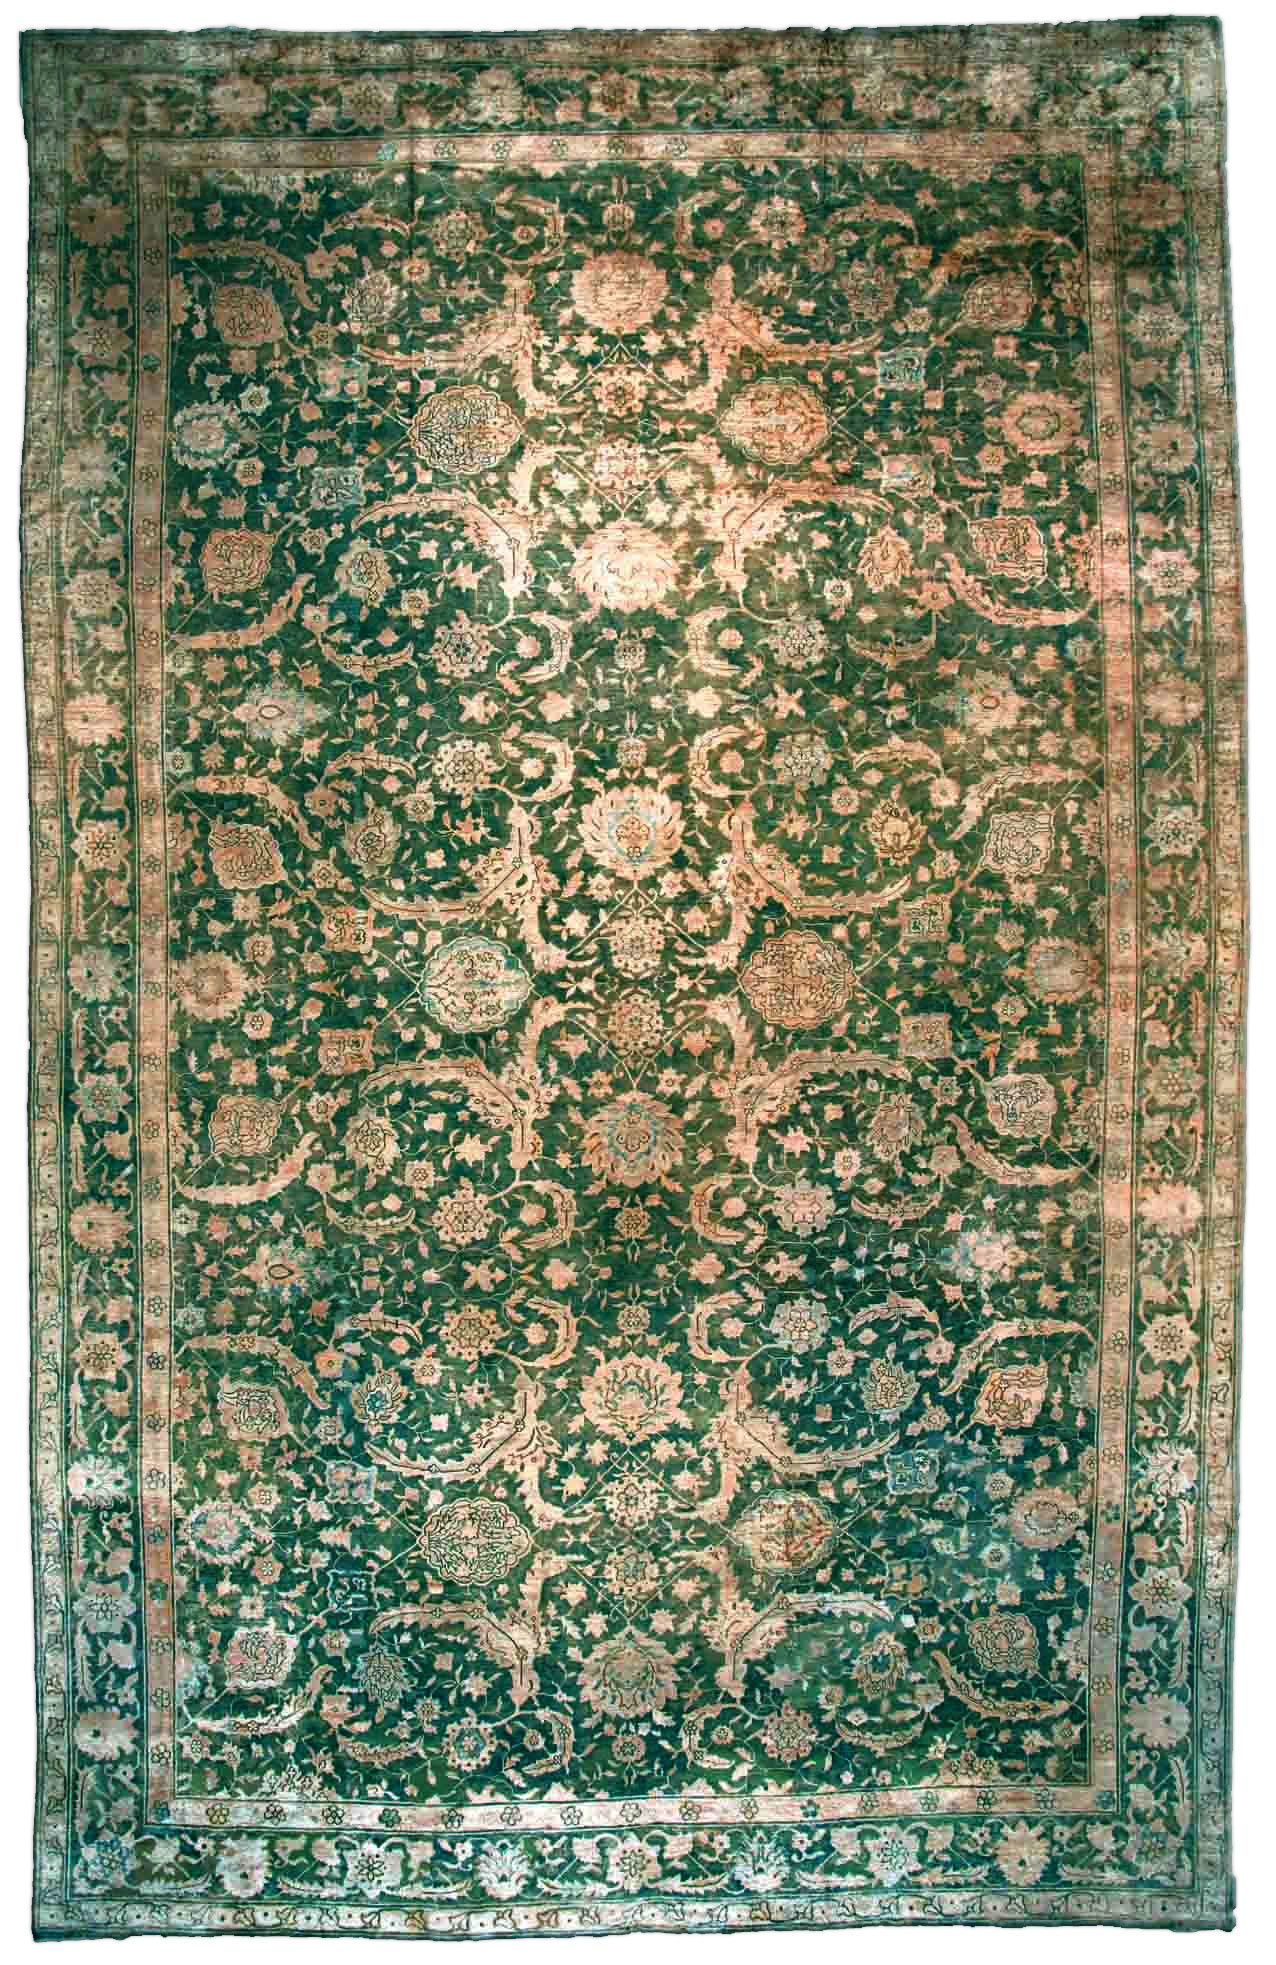 Oversized Vintage Chinese Carpet Bb7556 By Dlb Vintage Oriental Rugs Rugs Antique Rugs